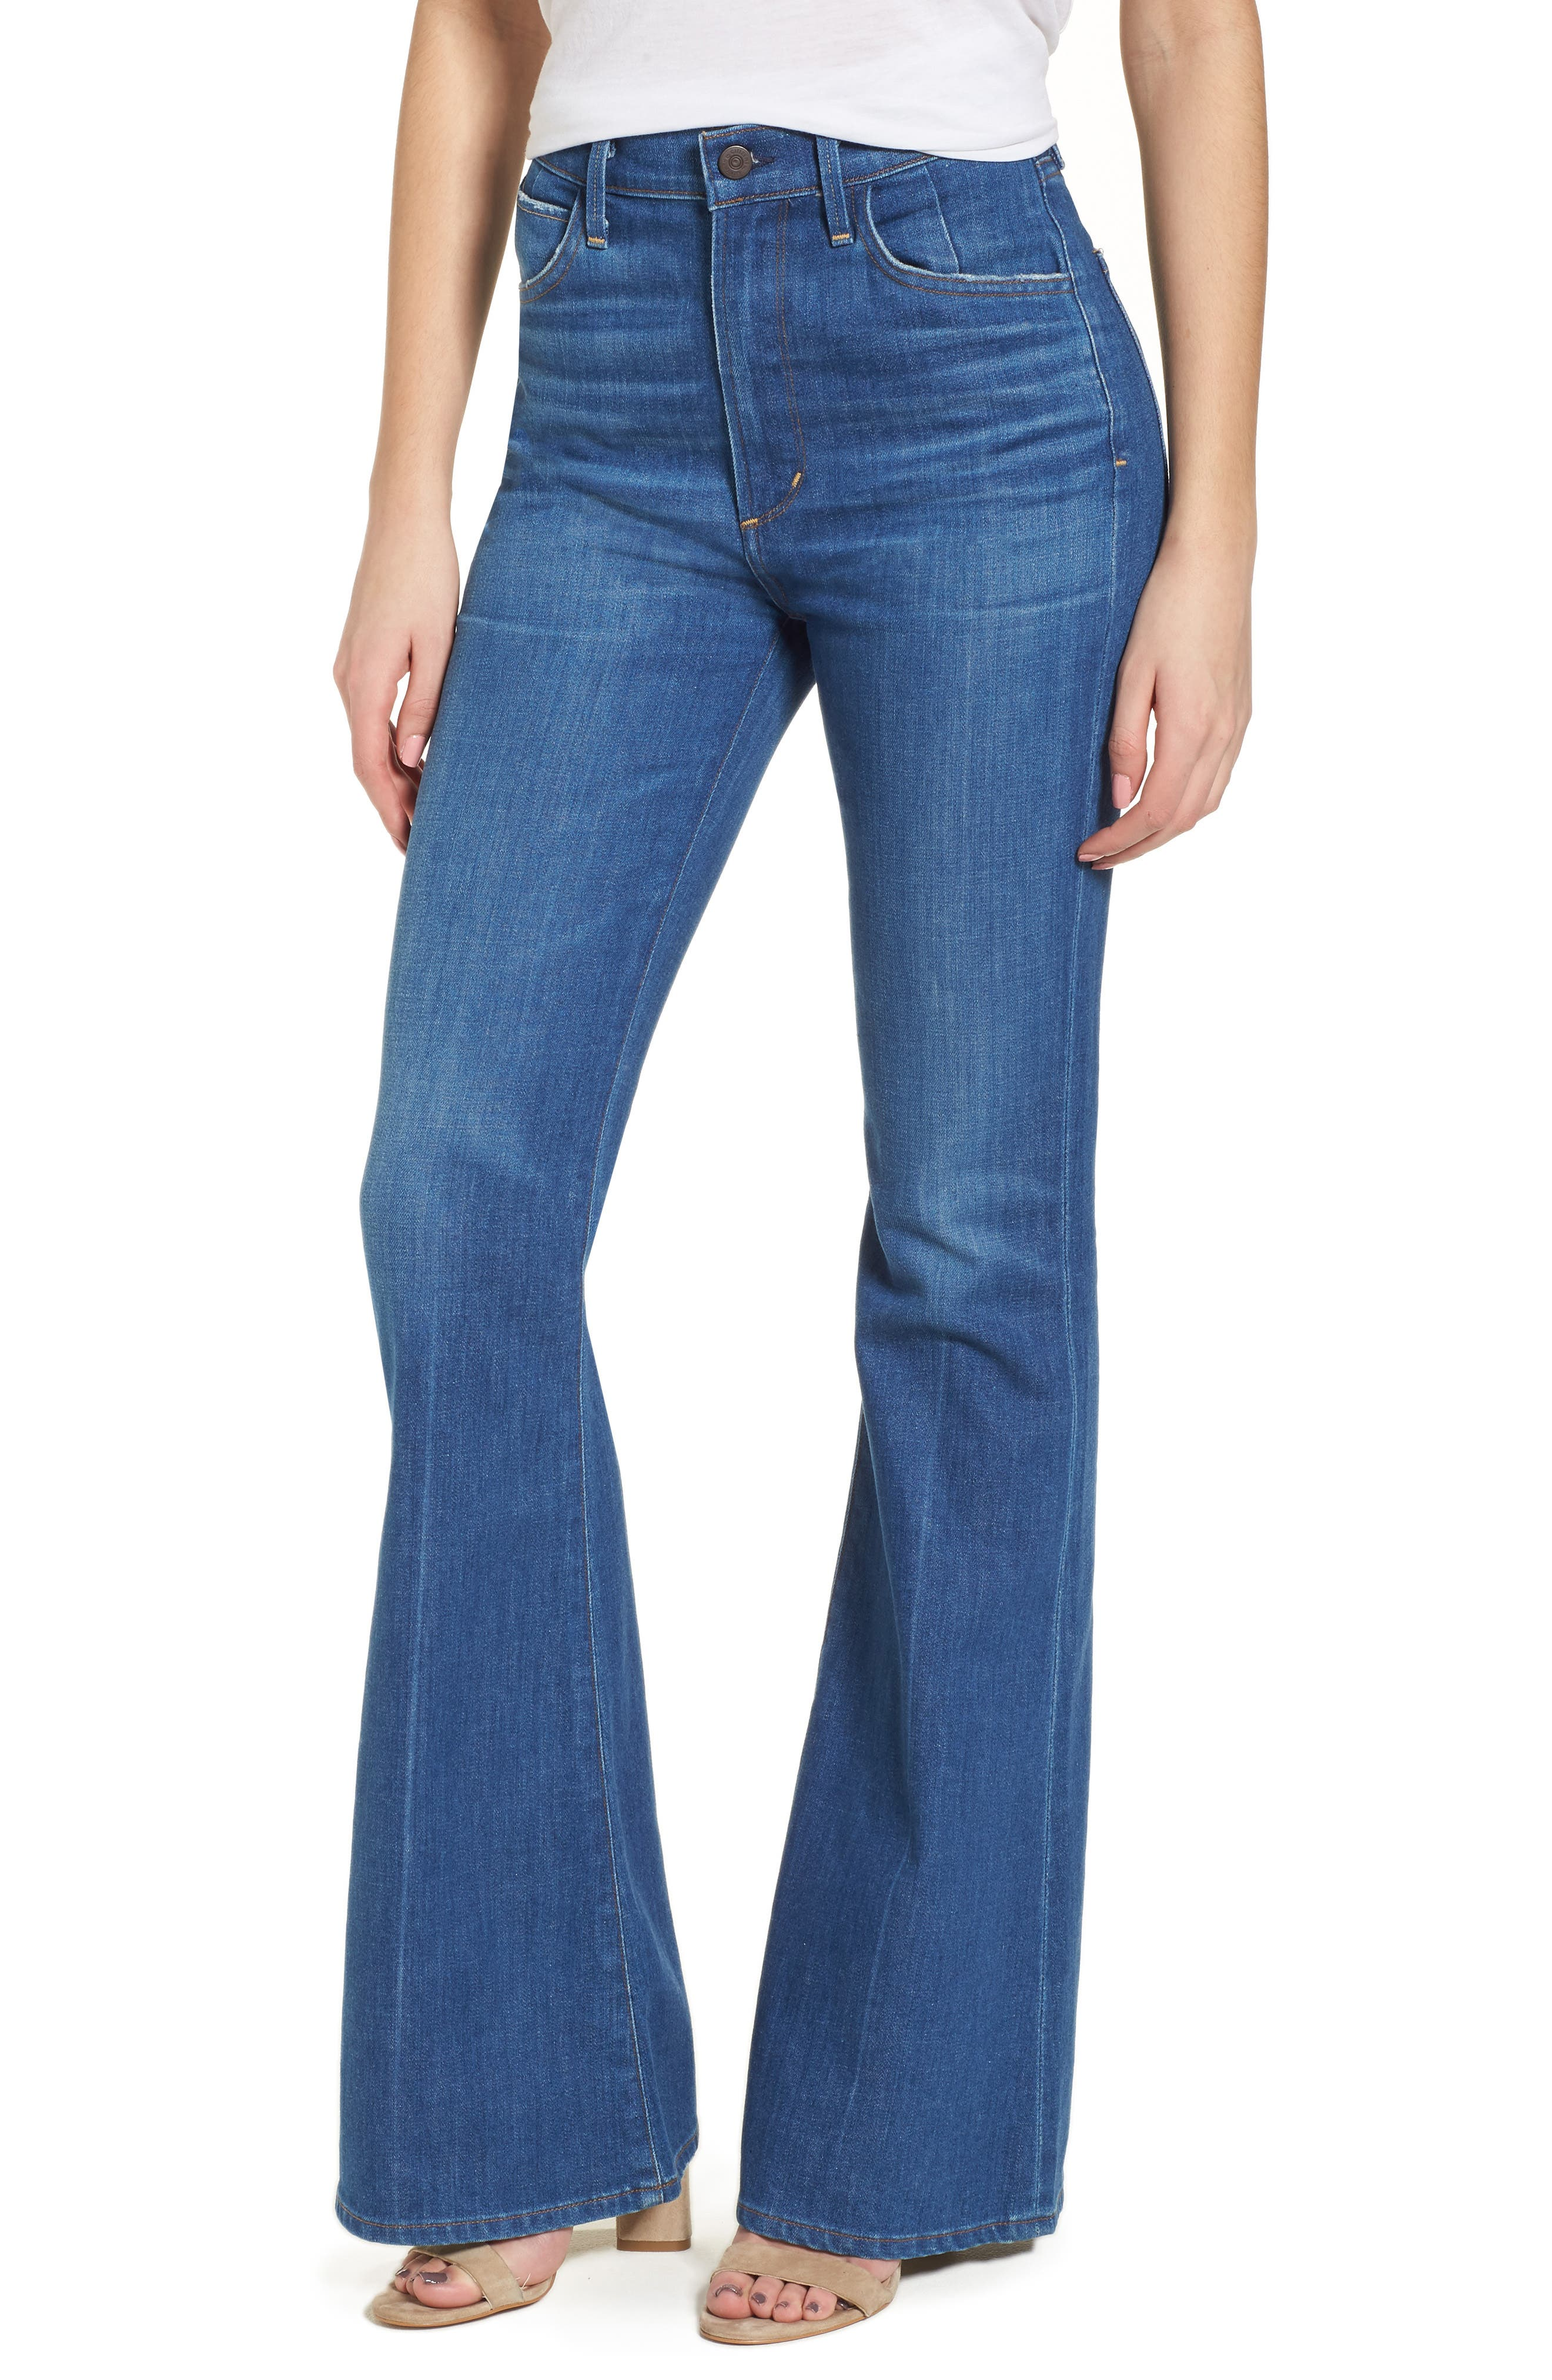 Citizens of Humanity Cherie High Waist Bell Jeans (Frampton)